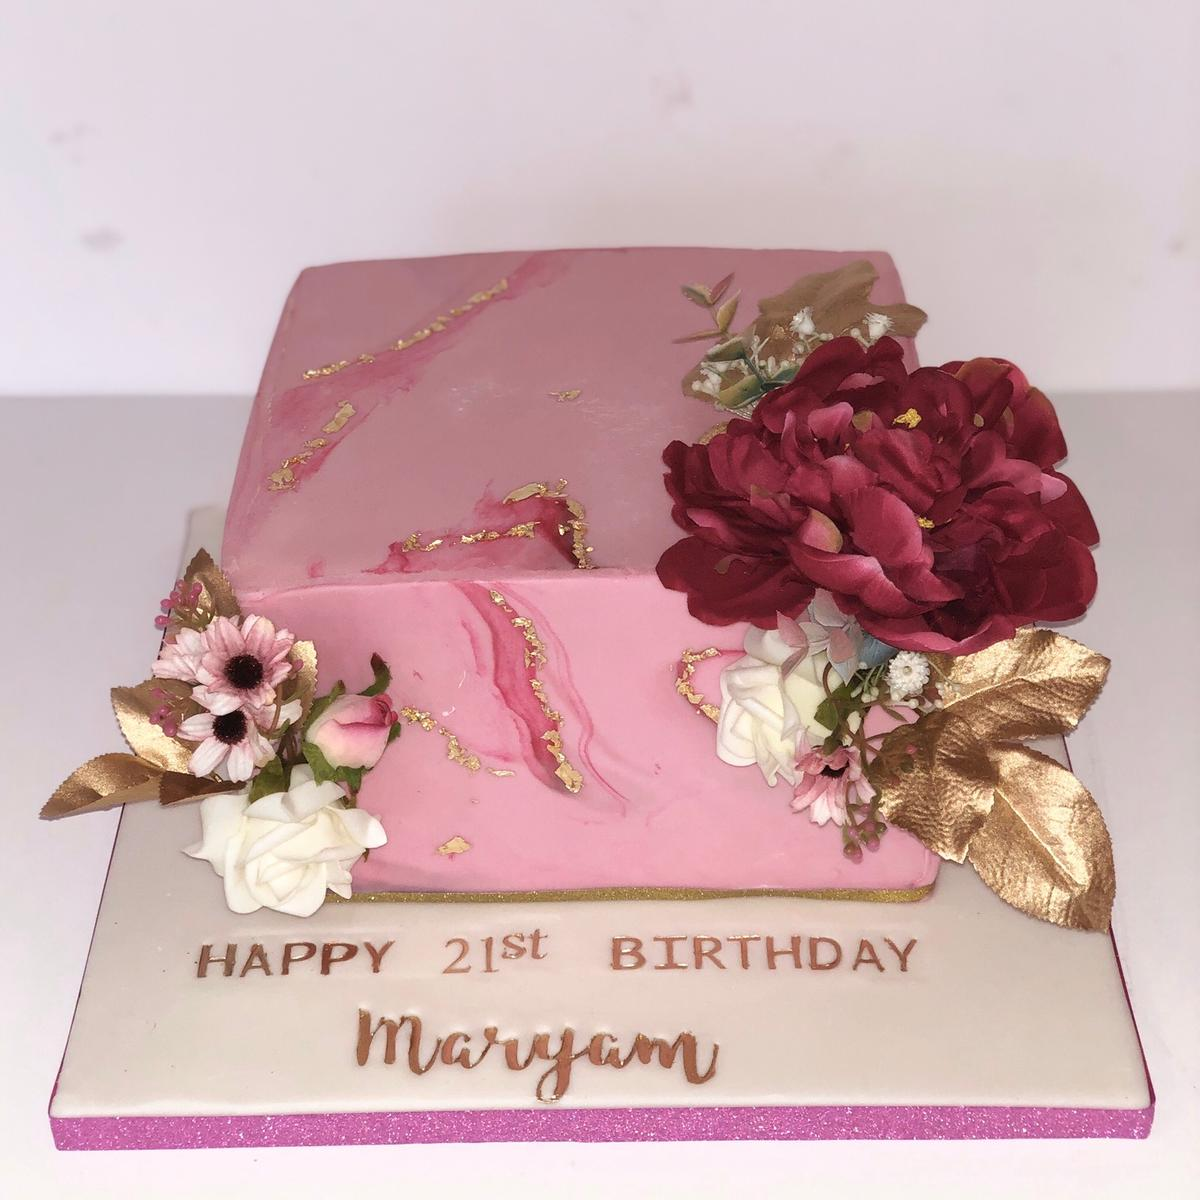 Tremendous Square Birthday Cake In B10 Birmingham For 1 00 For Sale Shpock Funny Birthday Cards Online Overcheapnameinfo